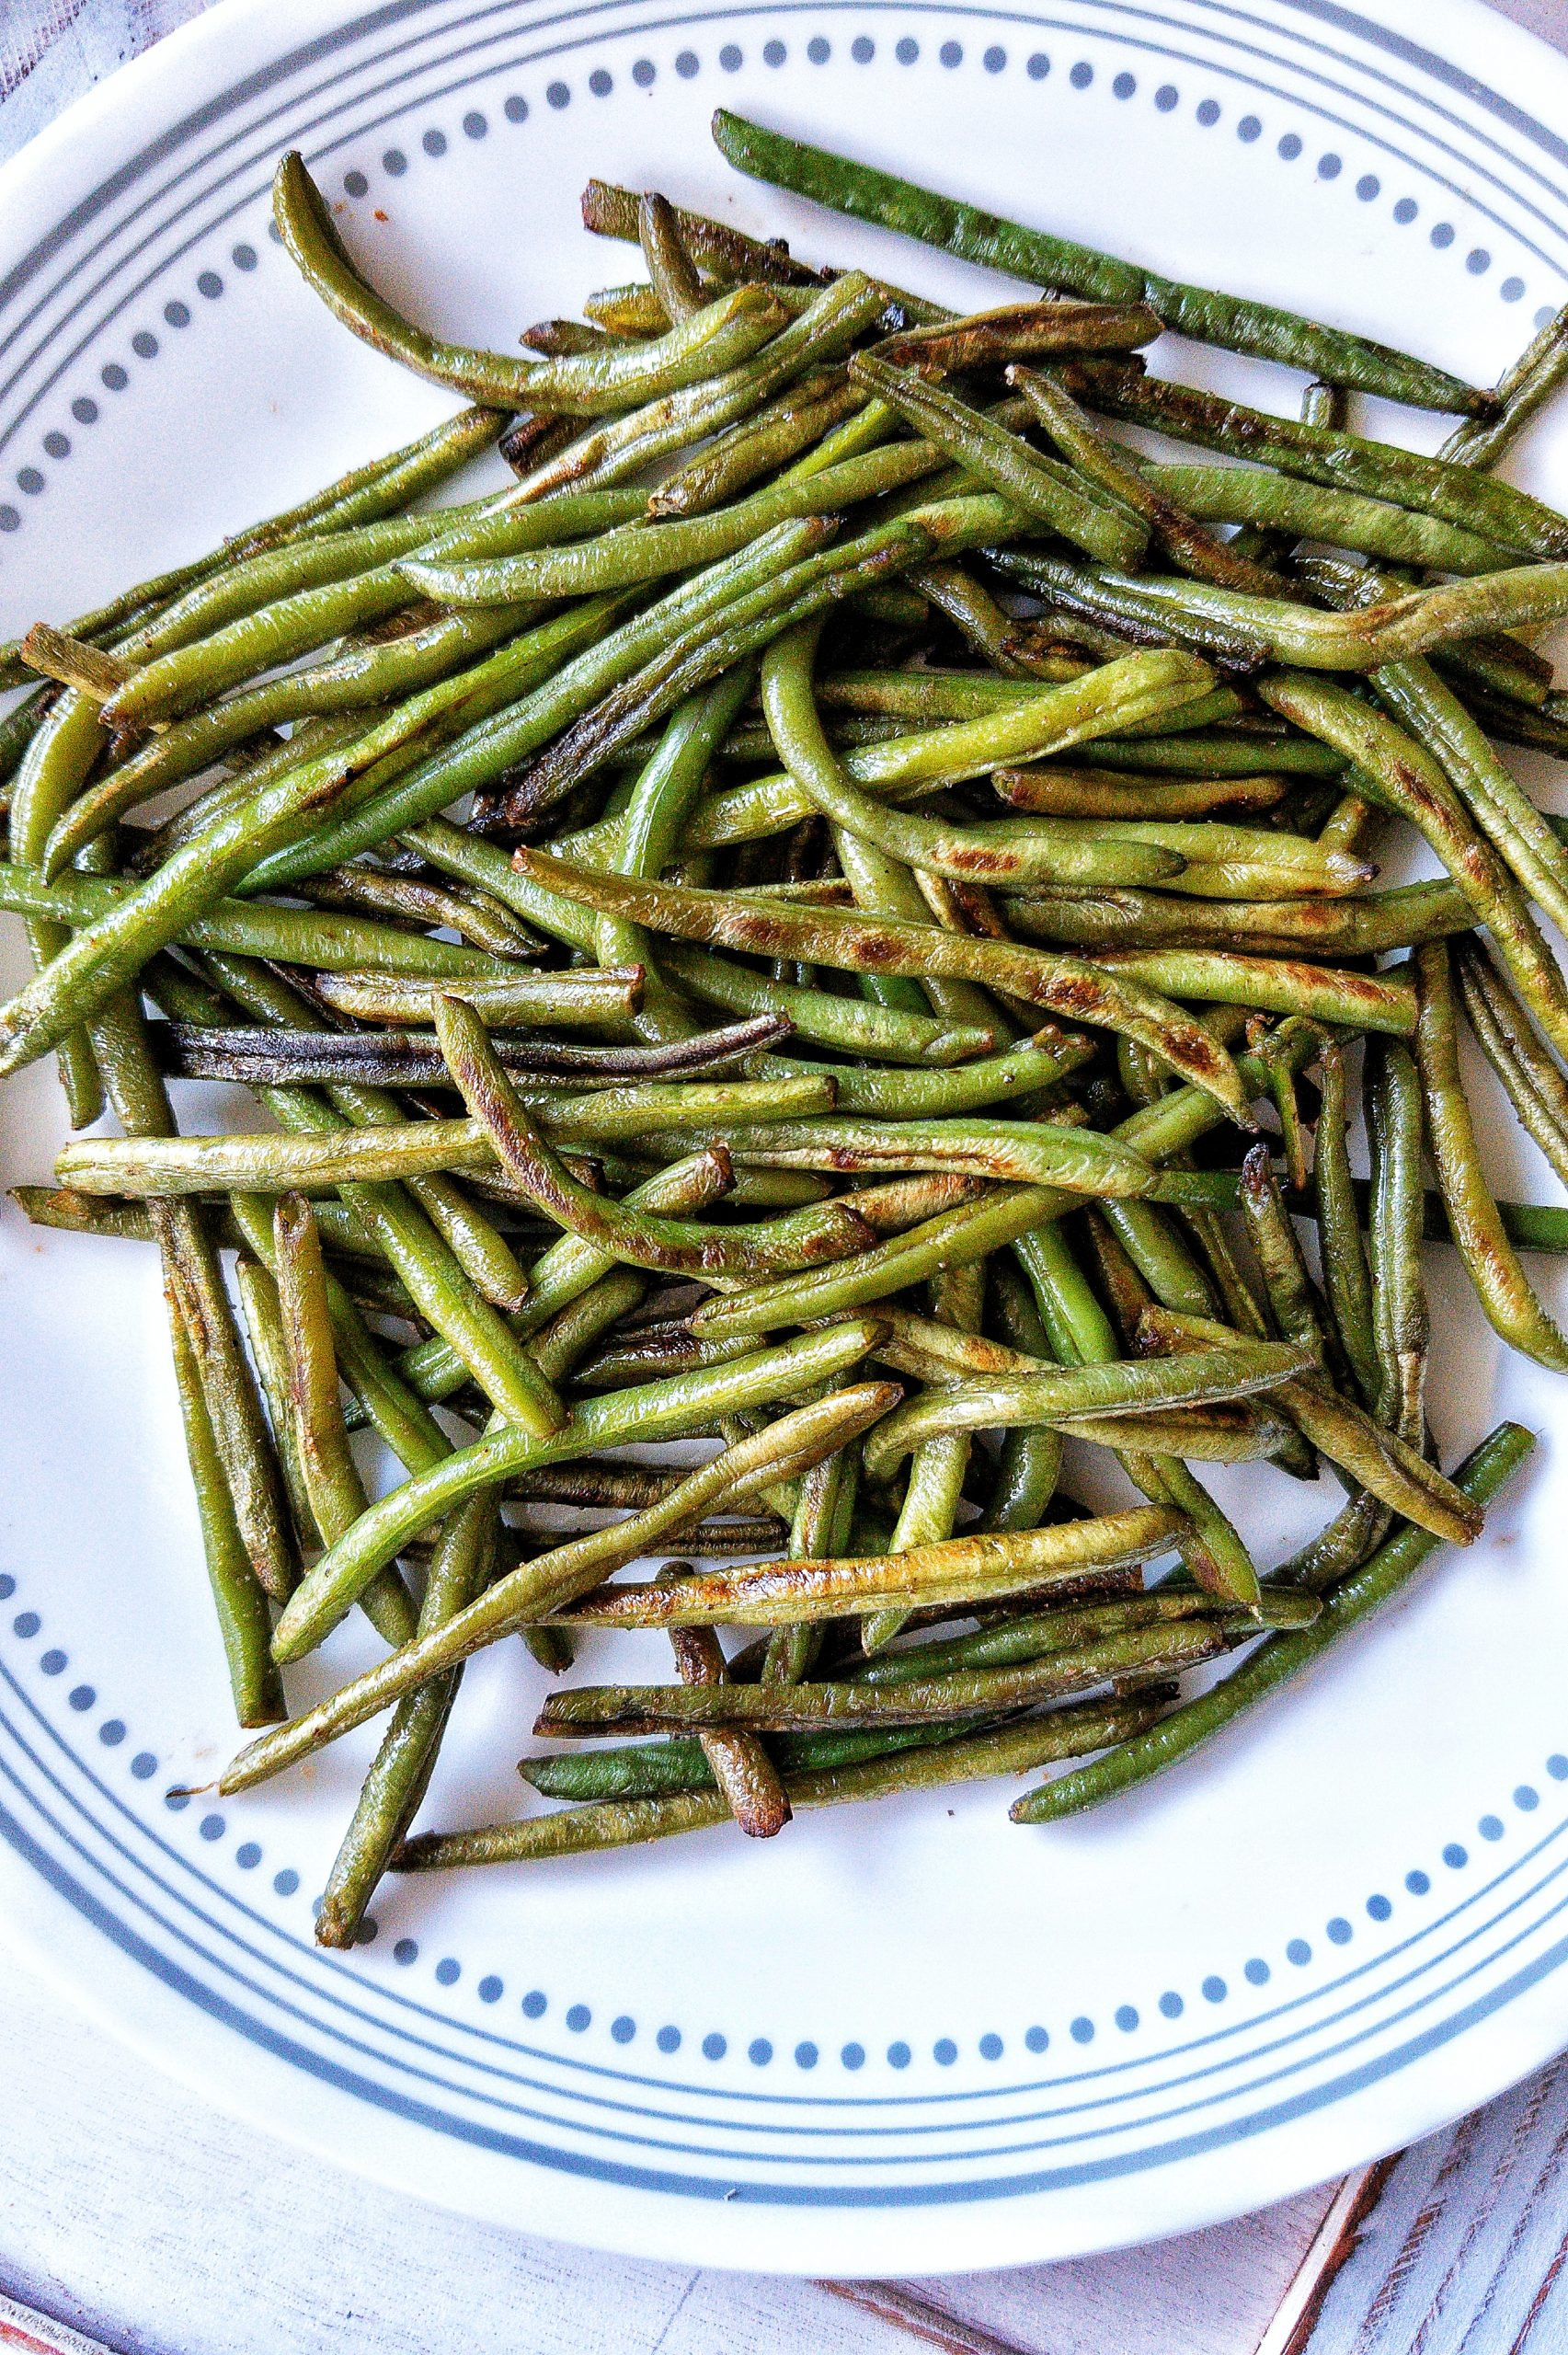 Blistered green beans on a white plate